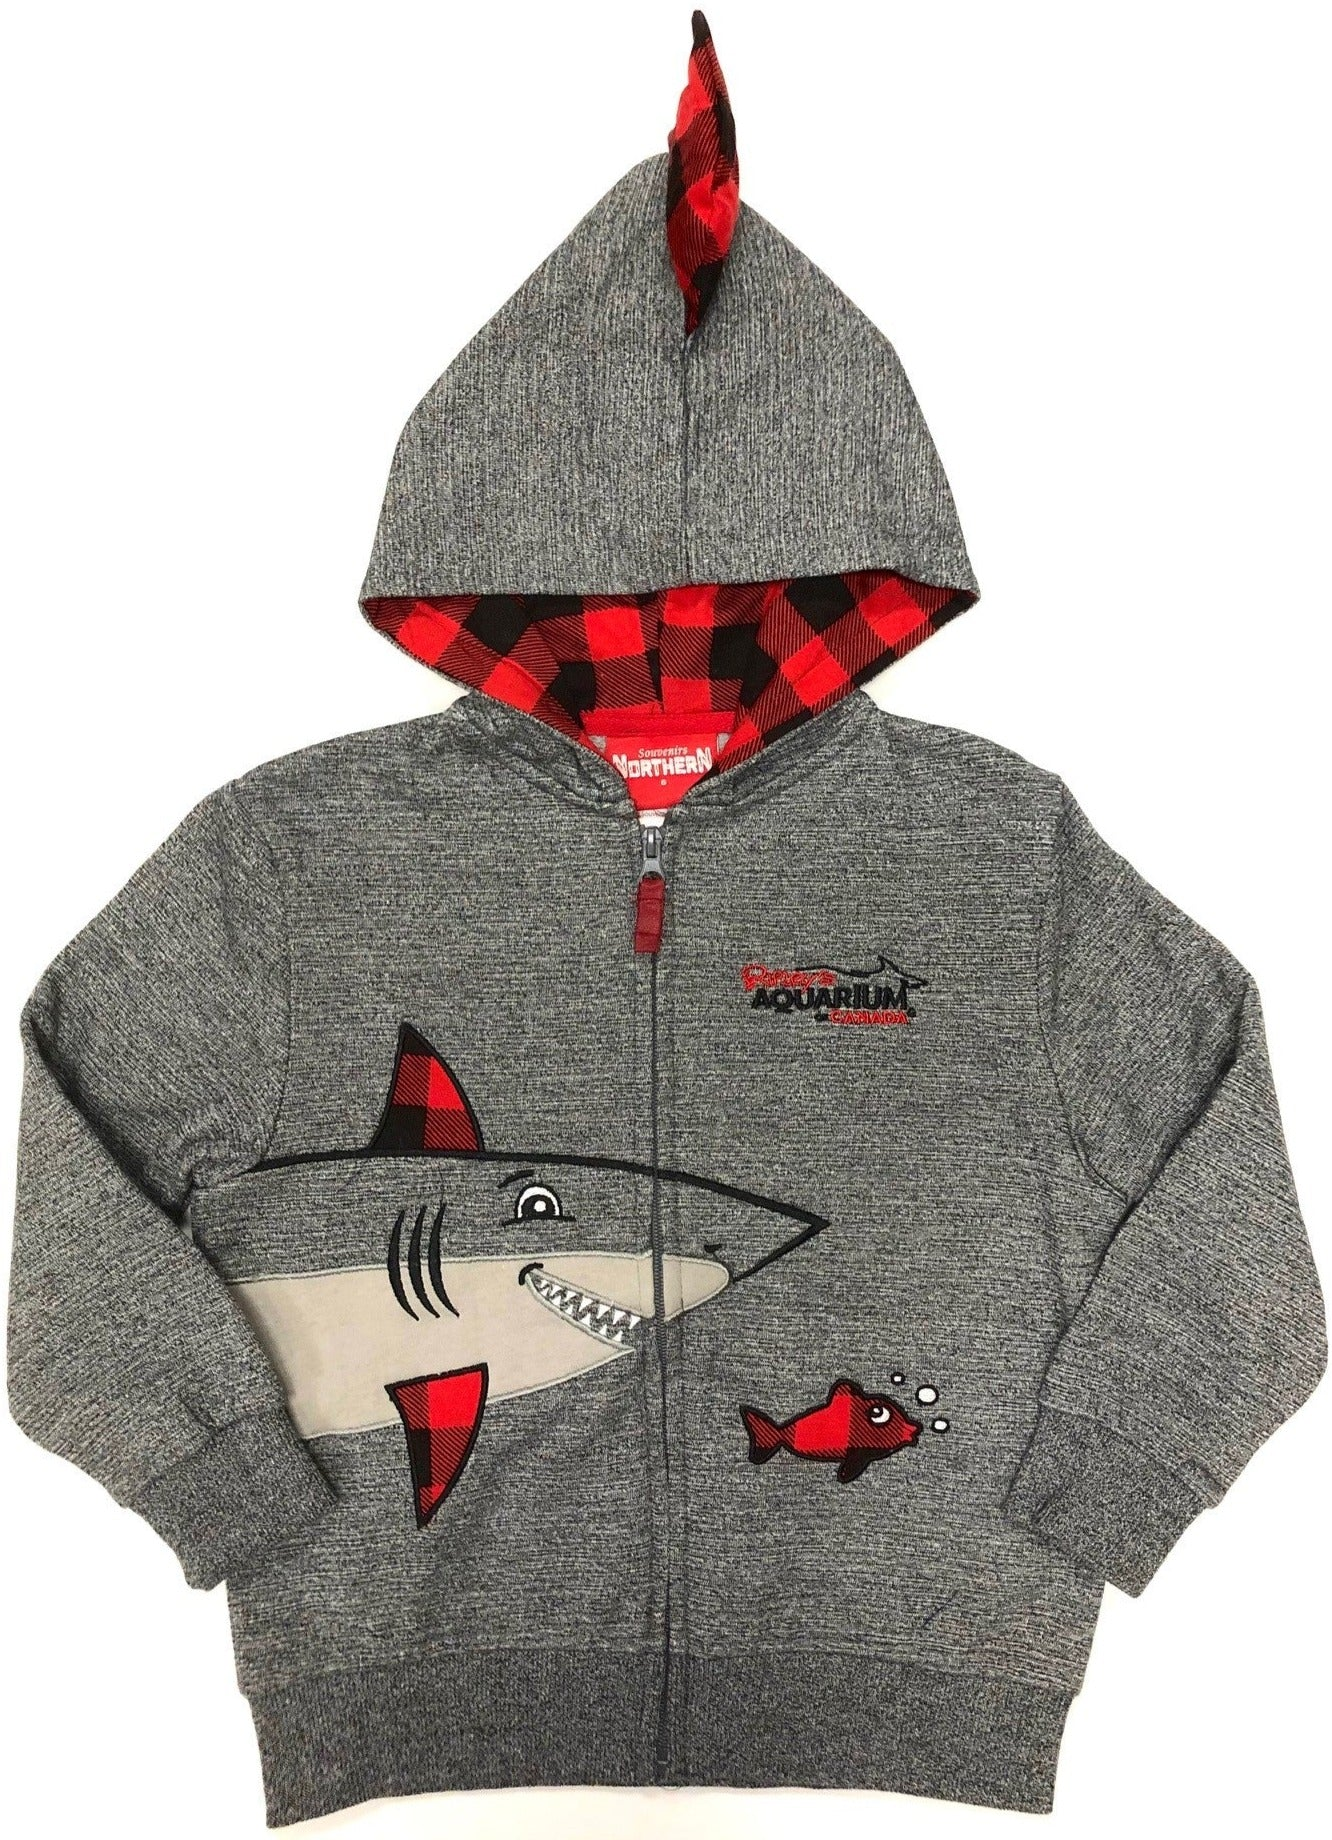 Kids Plaid Shark Zip Hoodie